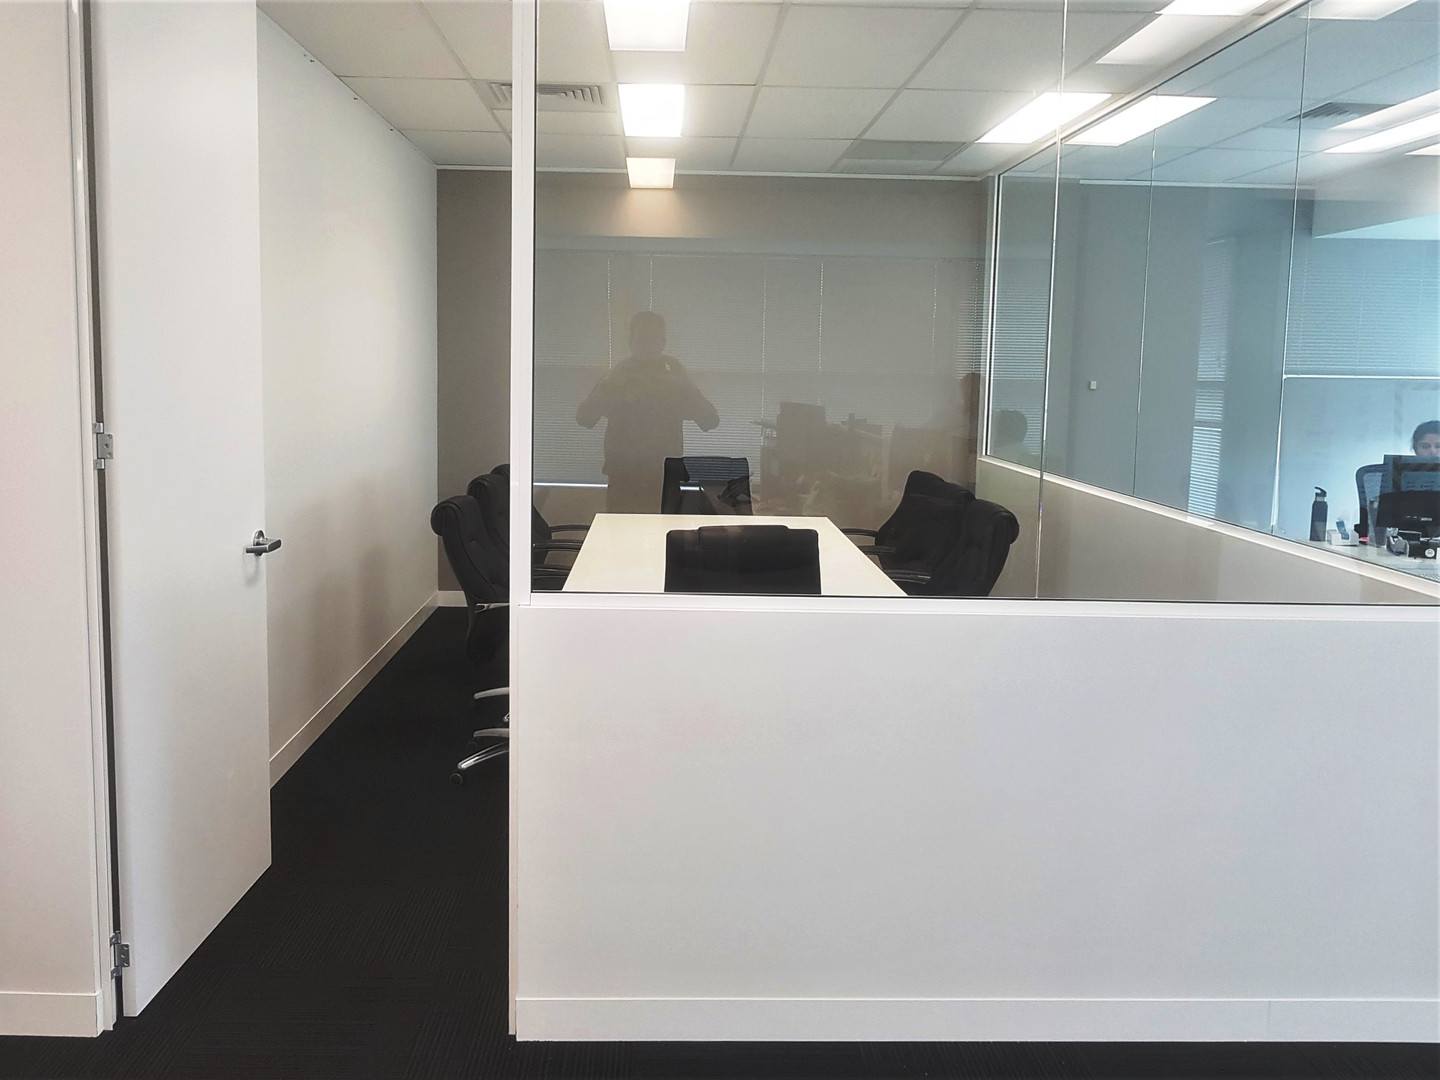 we can construct 1/2 glass walls to provide some privacy without losing light